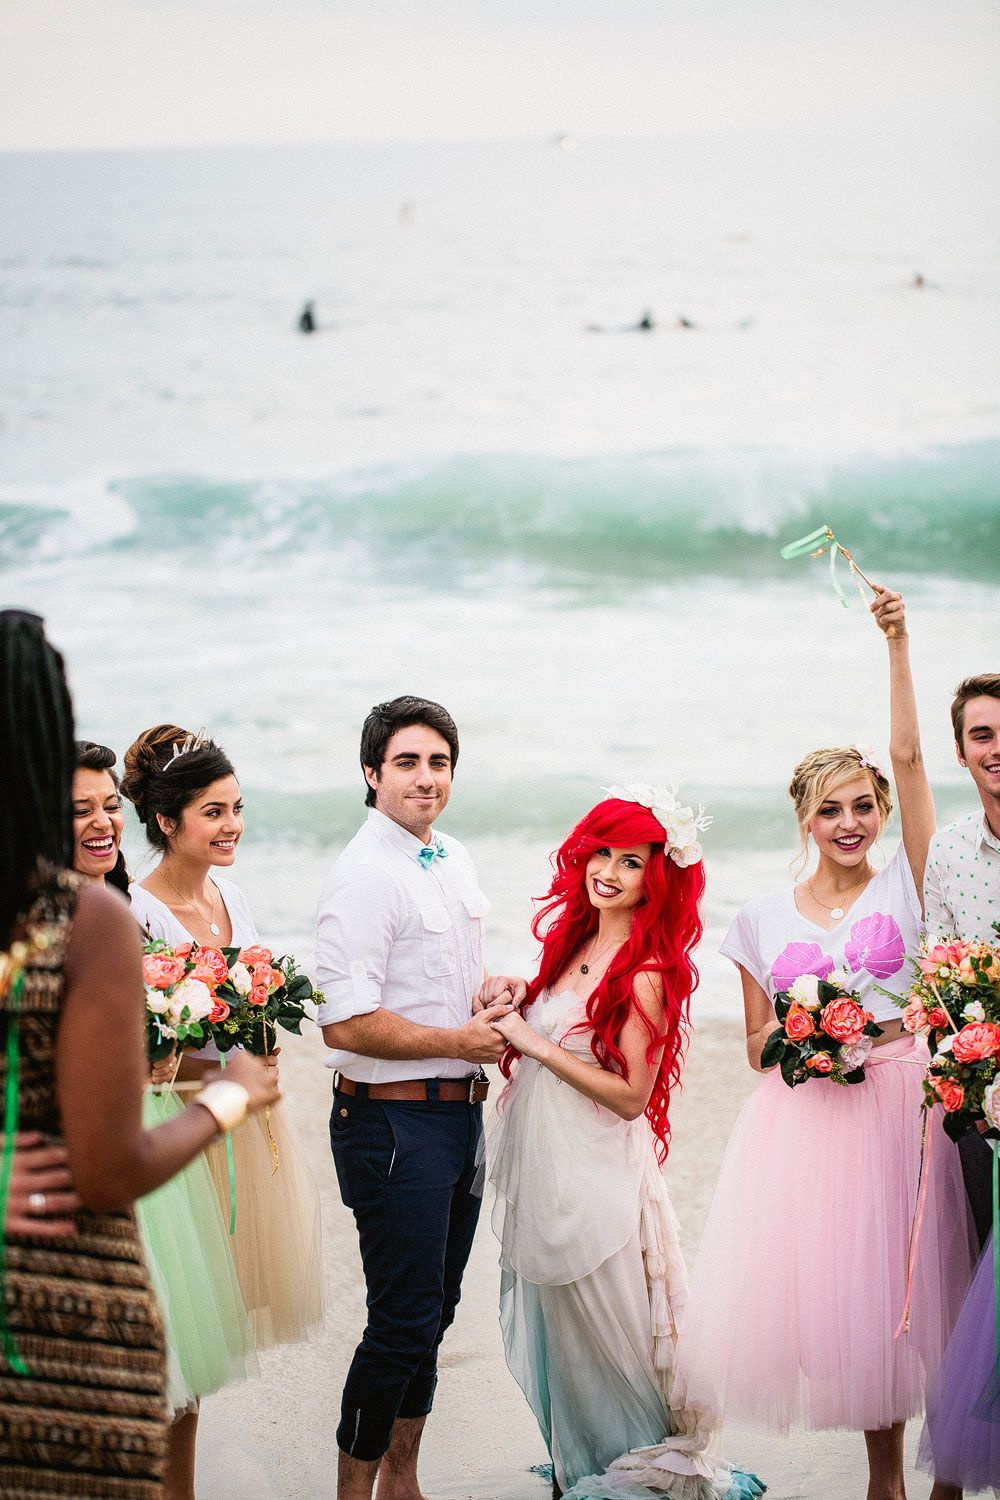 Hipster Ariel Marries Eric in This Fantasy Beach Wedding